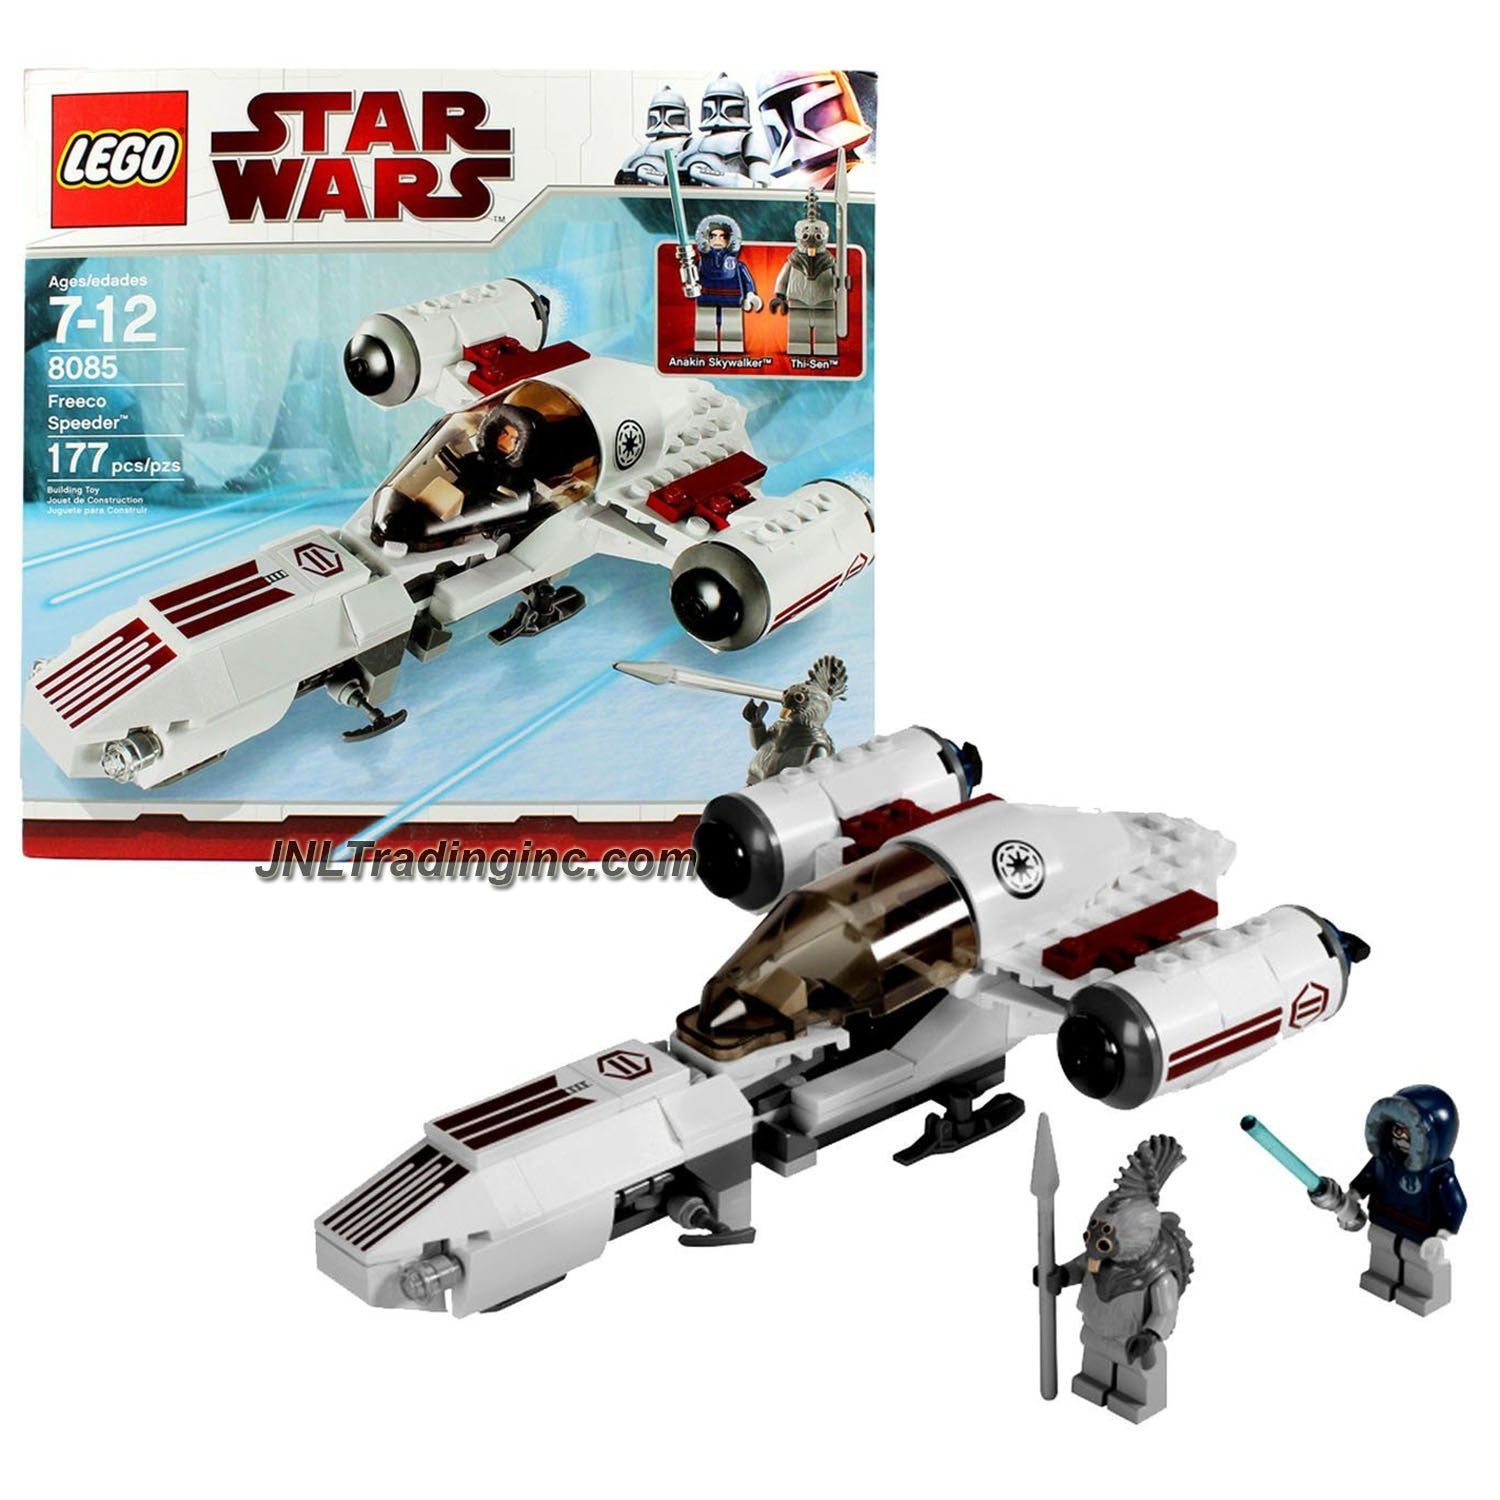 Year 2010 Lego Star Wars The Clone Wars Series Vehicle Set #8085 - Freeco Speeder With Anakin Skywalker And Talz Chieftain Minifigures (total Pieces : 177)